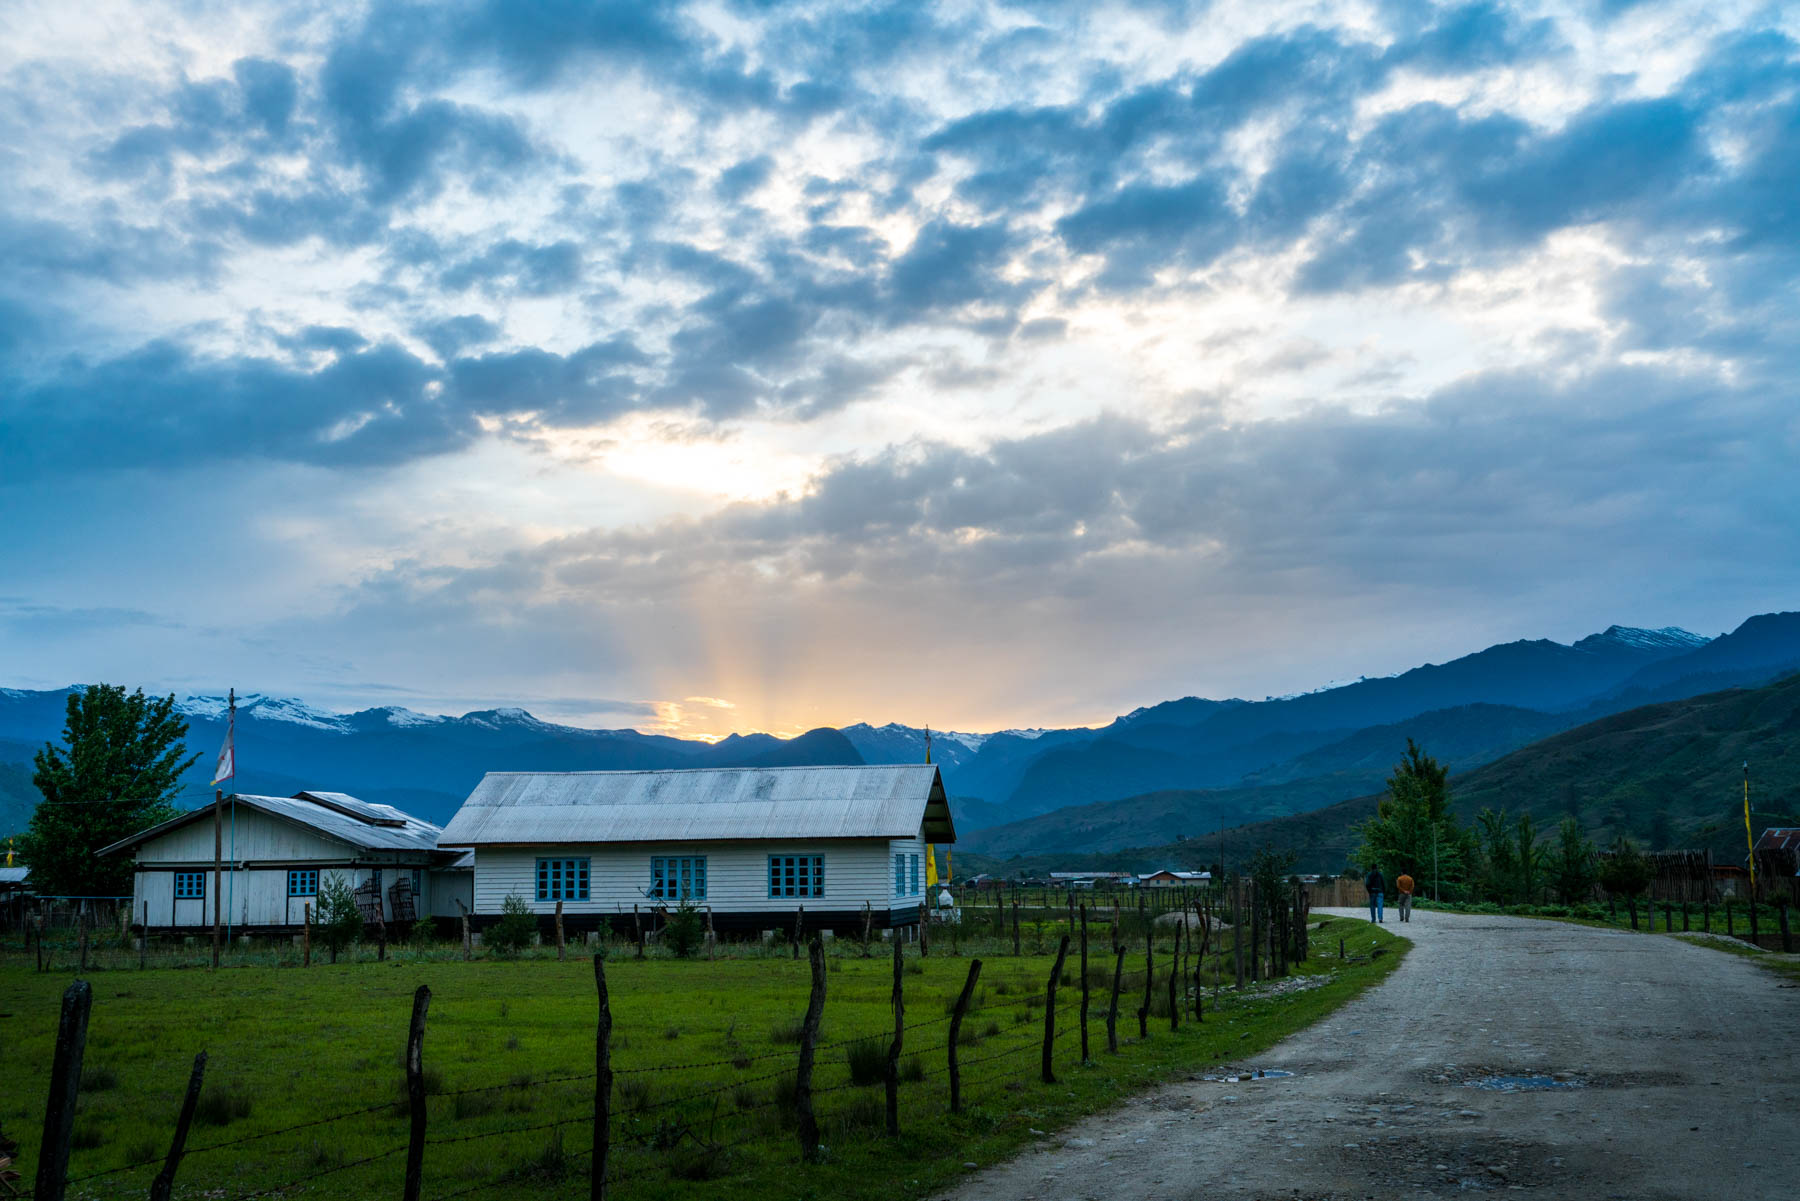 Backpacking in Arunachal Pradesh travel guide - Sunset in Mechuka - Lost With Purpose